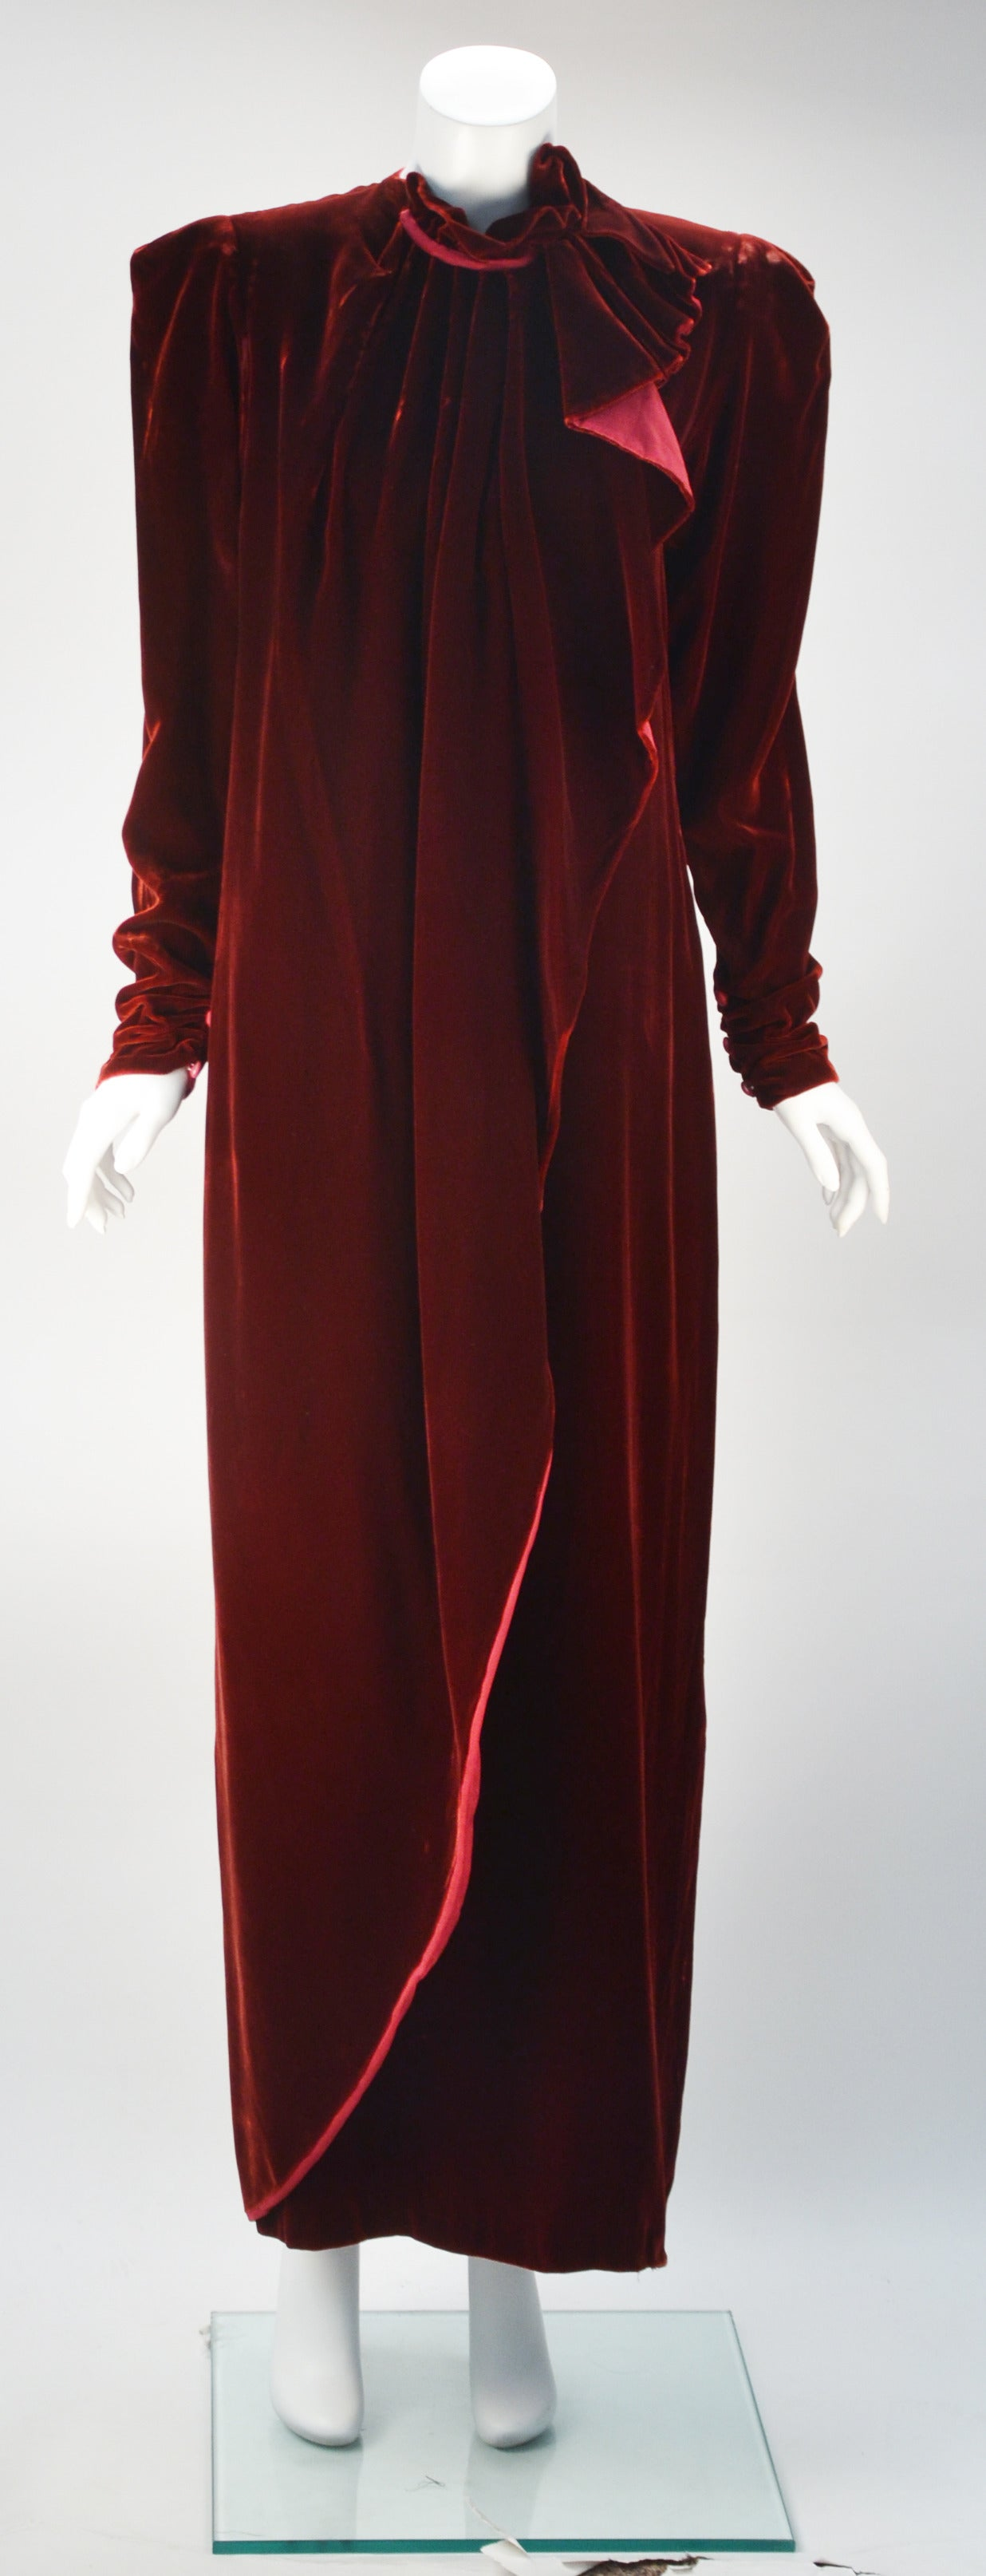 1980's GIORGIO DI SANT' ANGELO wine velvet gown features a unique ruffled detail at the neck that livens a familiar shape. Front zipper is covered by an exciting Drape/flounce that tapers to the hem lined with a bright wine organza. Rushing at the